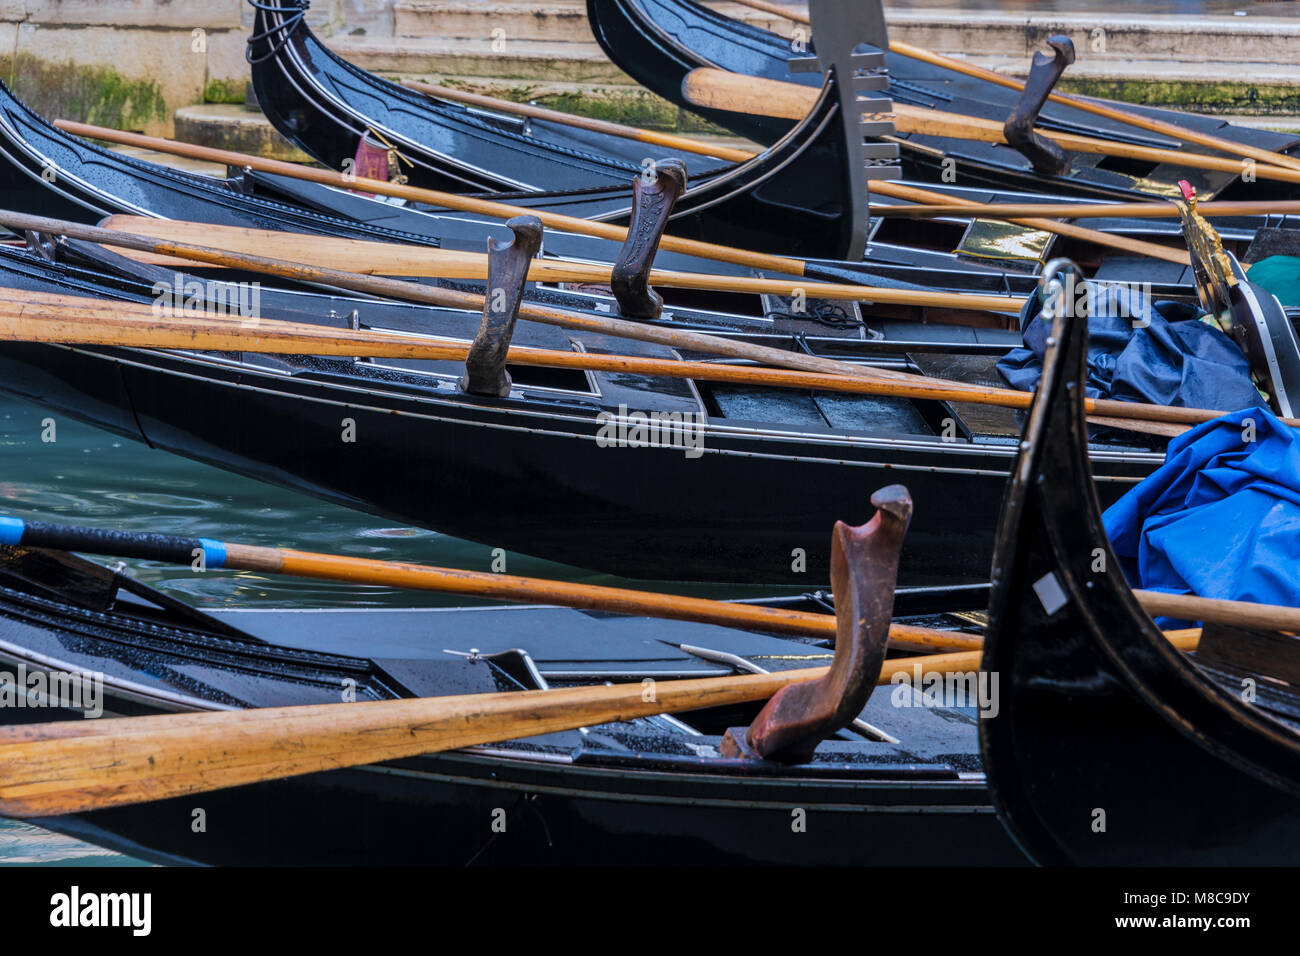 Impressionen aus Venedig Stock Photo